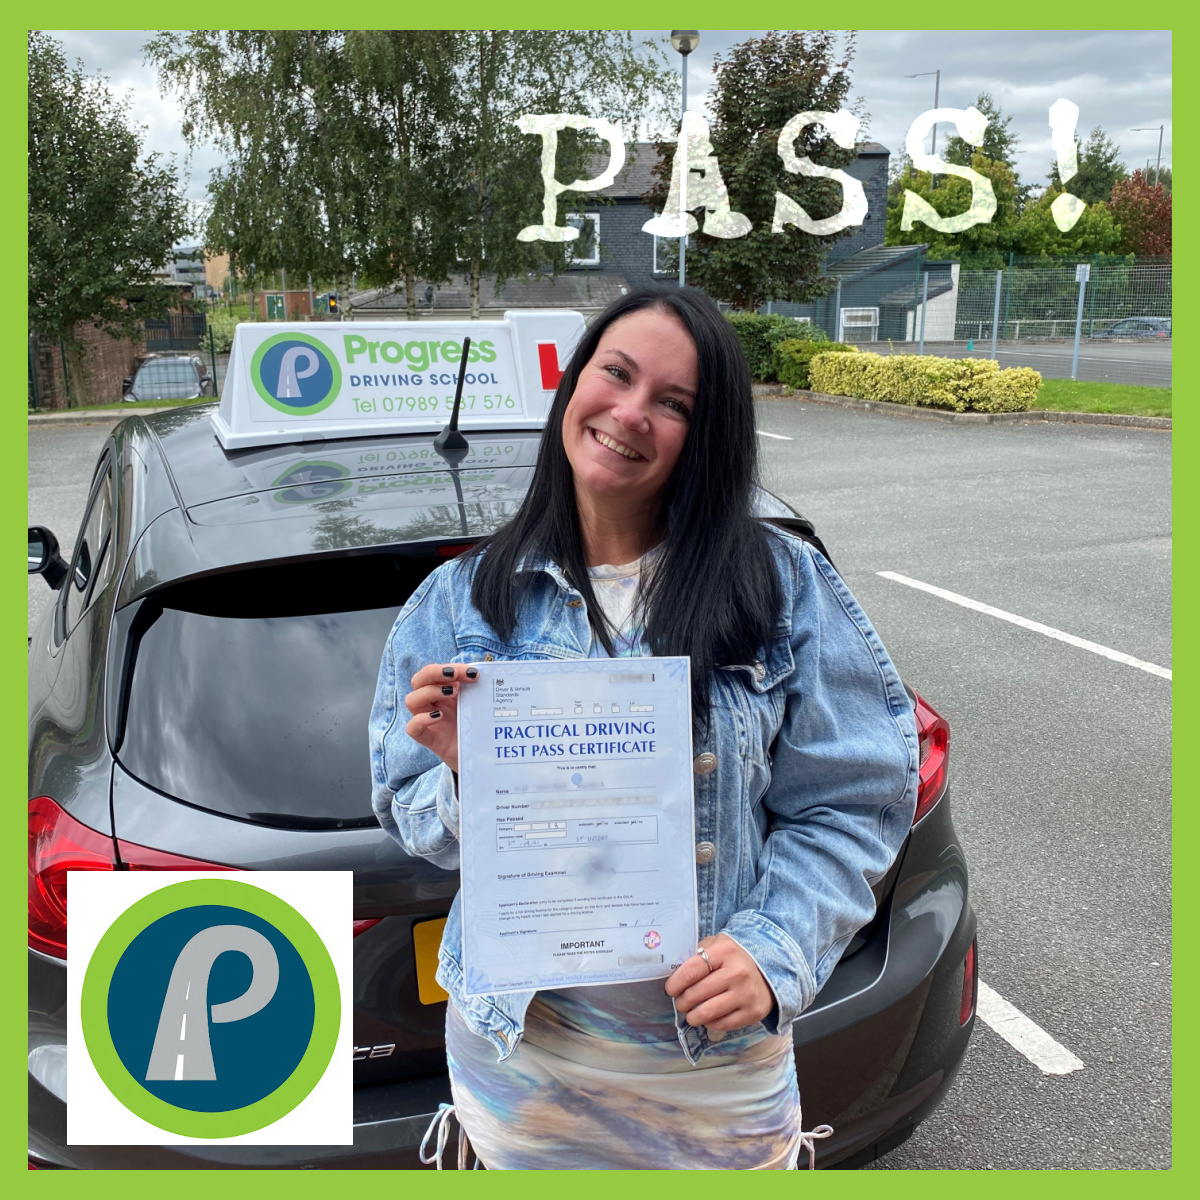 Chelsea passed her driving test with Progress Driving School